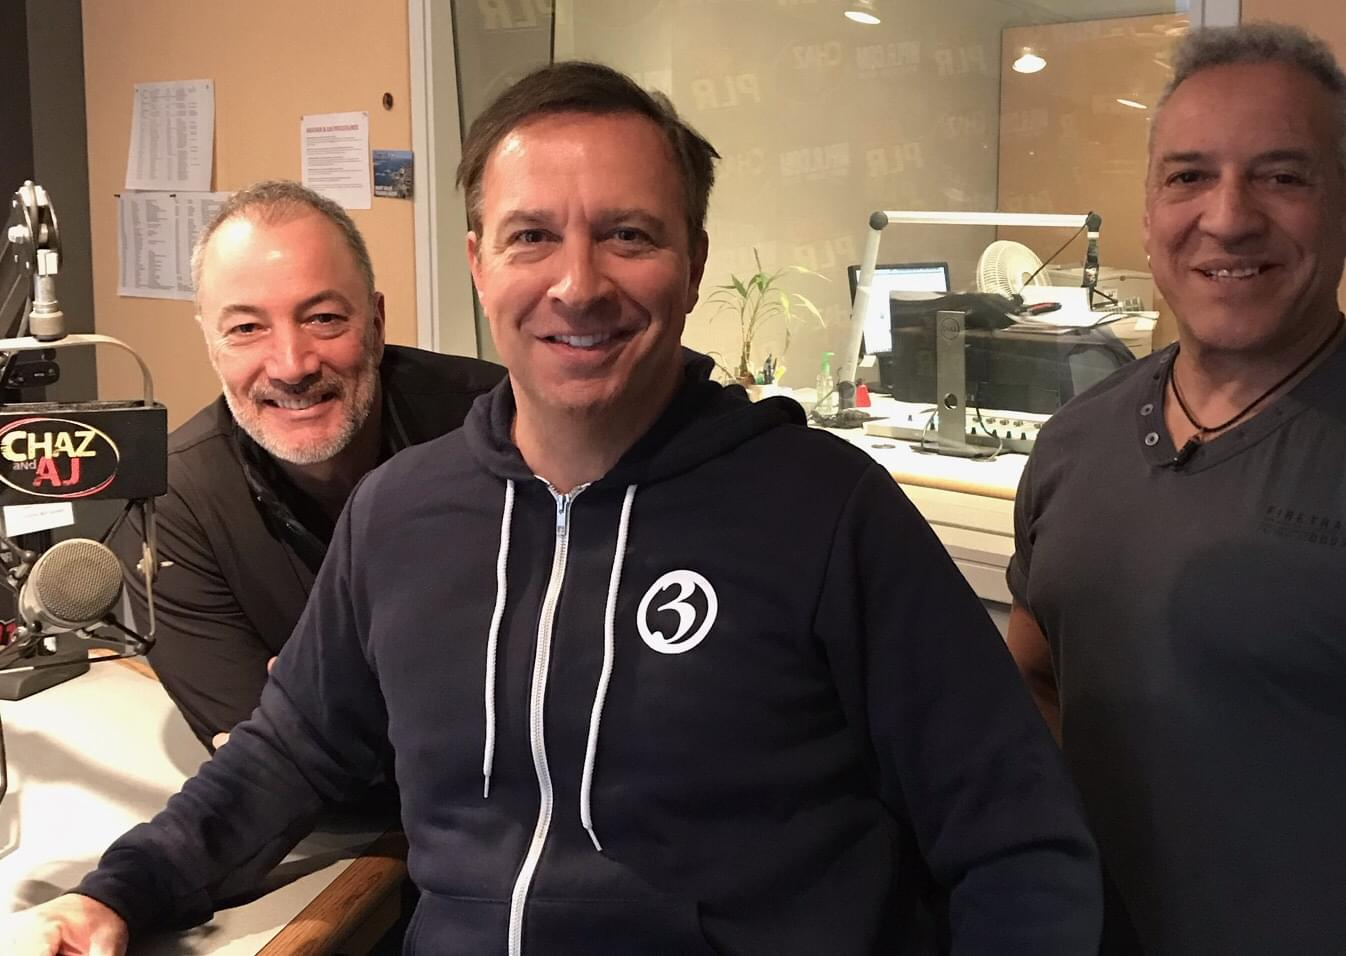 PODCAST – Tuesday, February 4: Dennis House Stops By, Crazy Tour Rider Requests, And Norm Pattis Tells Us What's Next For The Fotis Dulos Defense Team